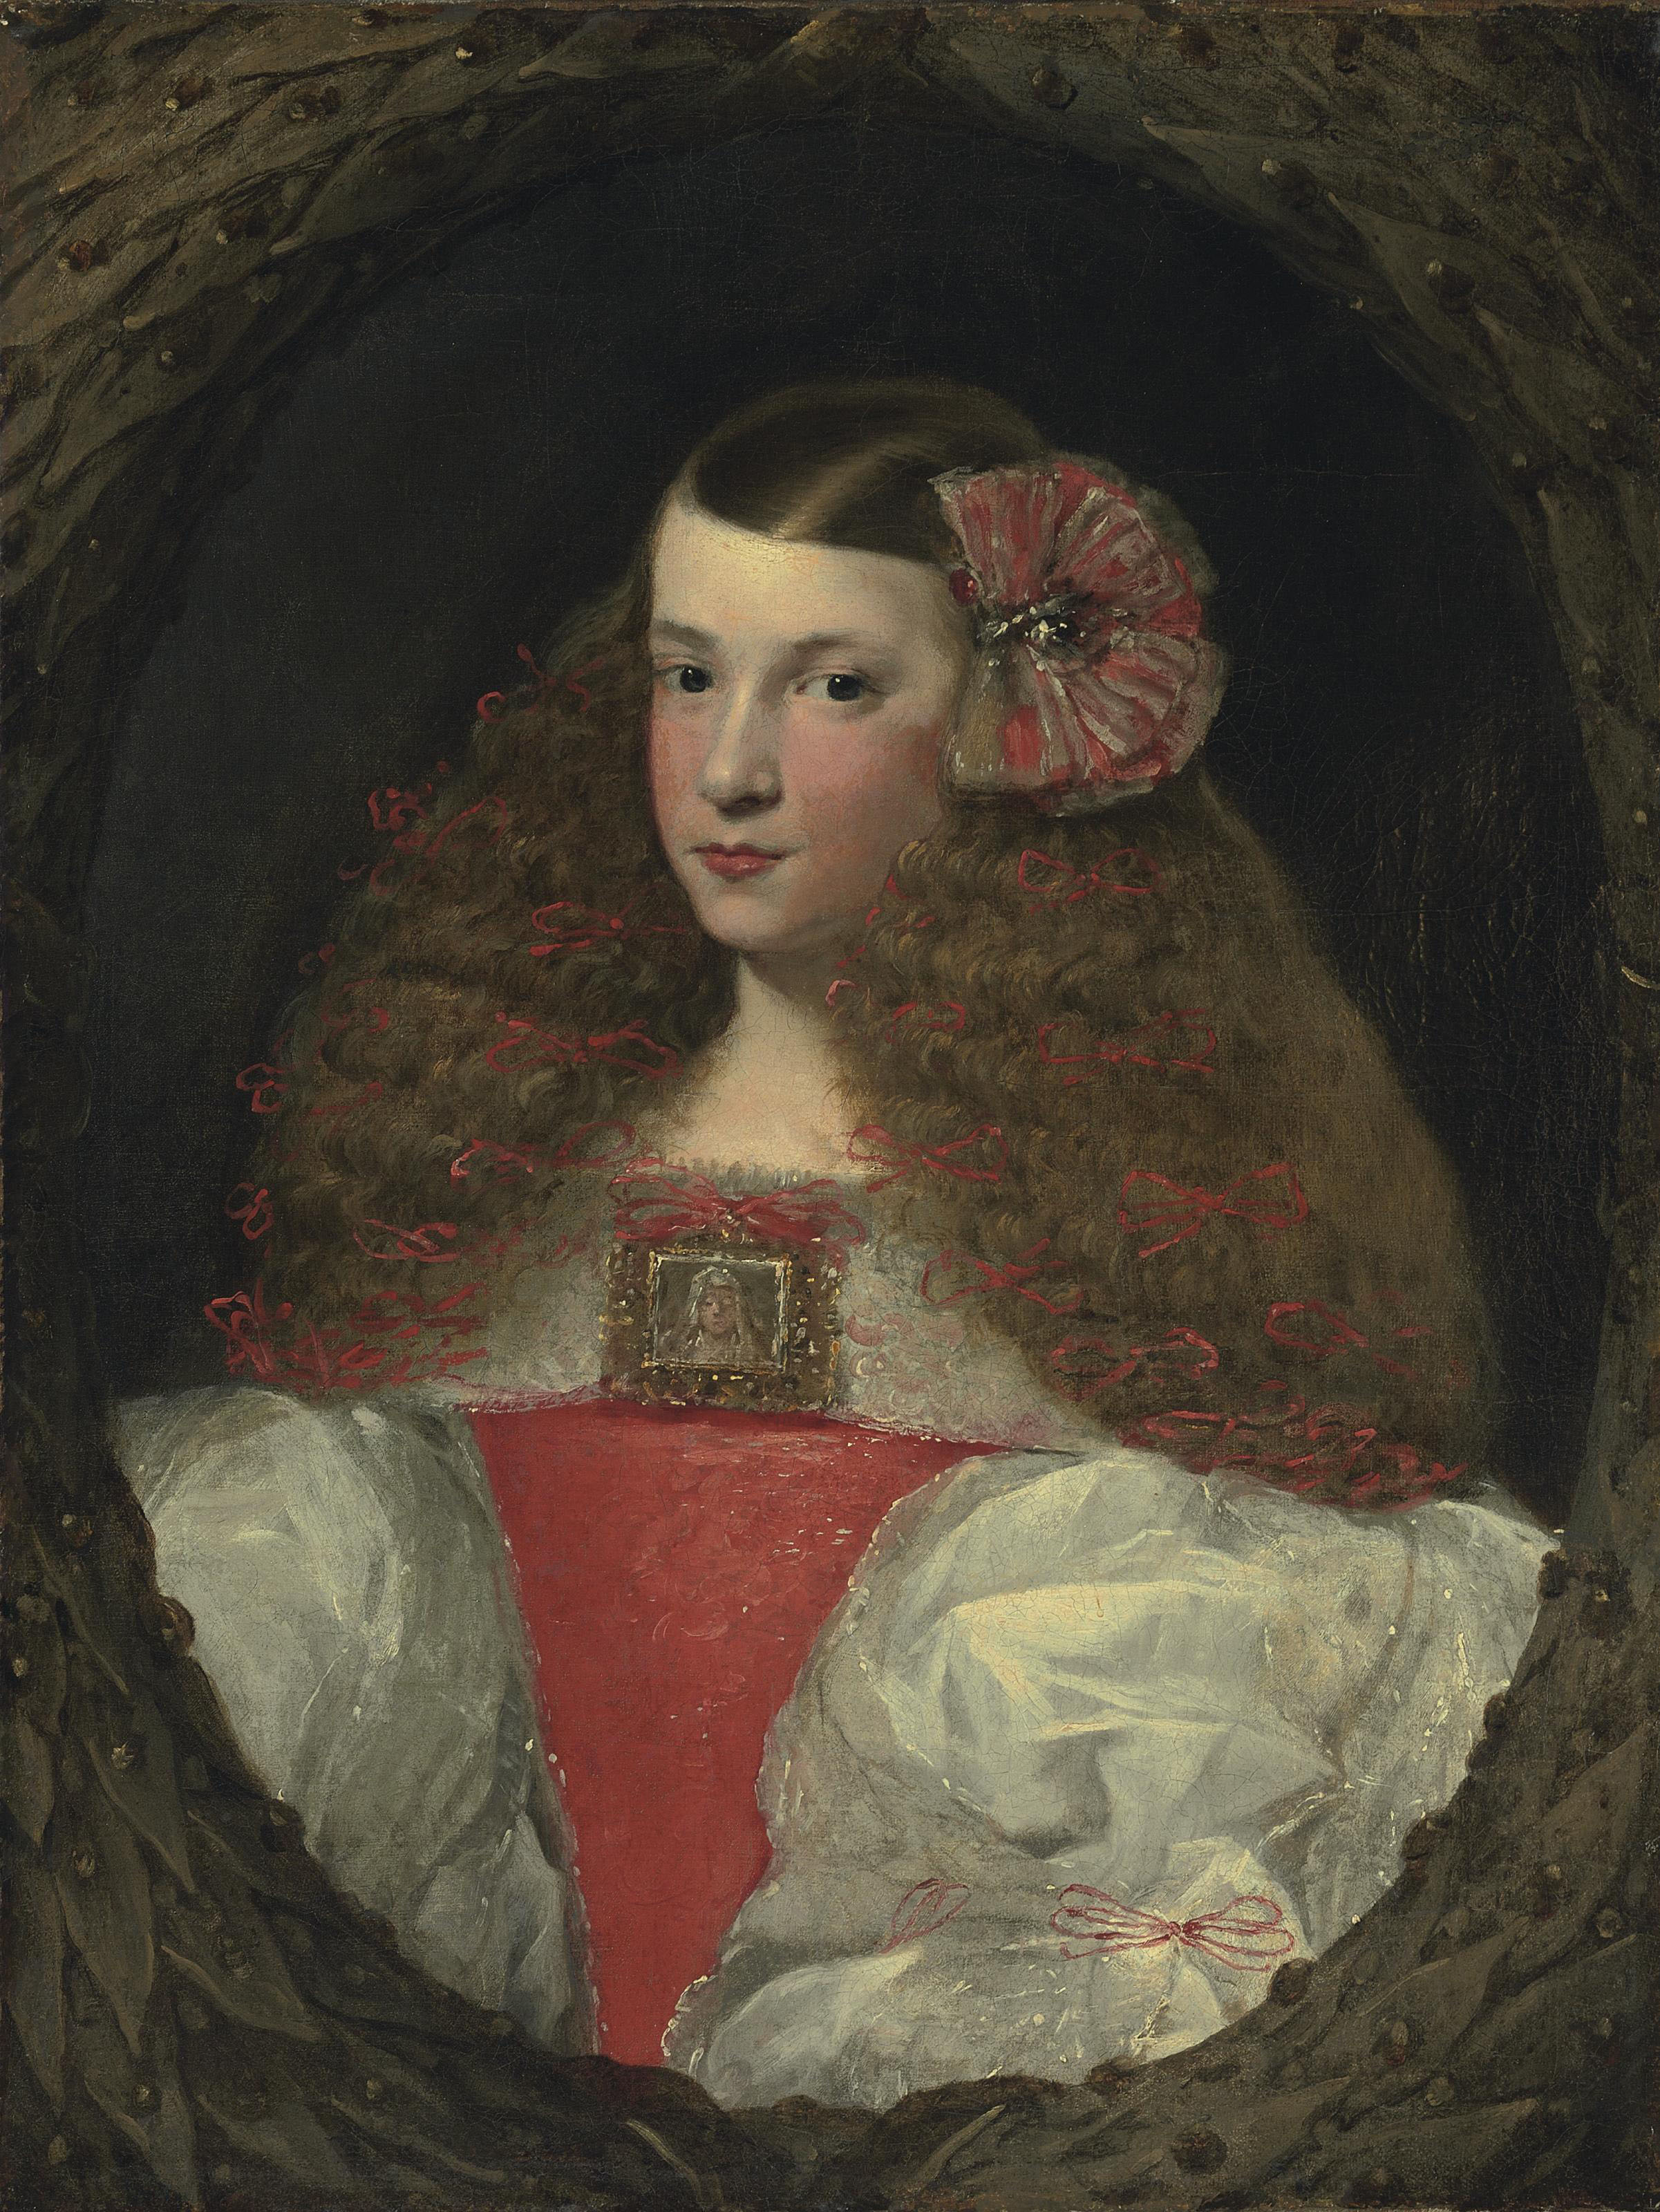 Portrait of a young girl, half-length, in a feigned wreath